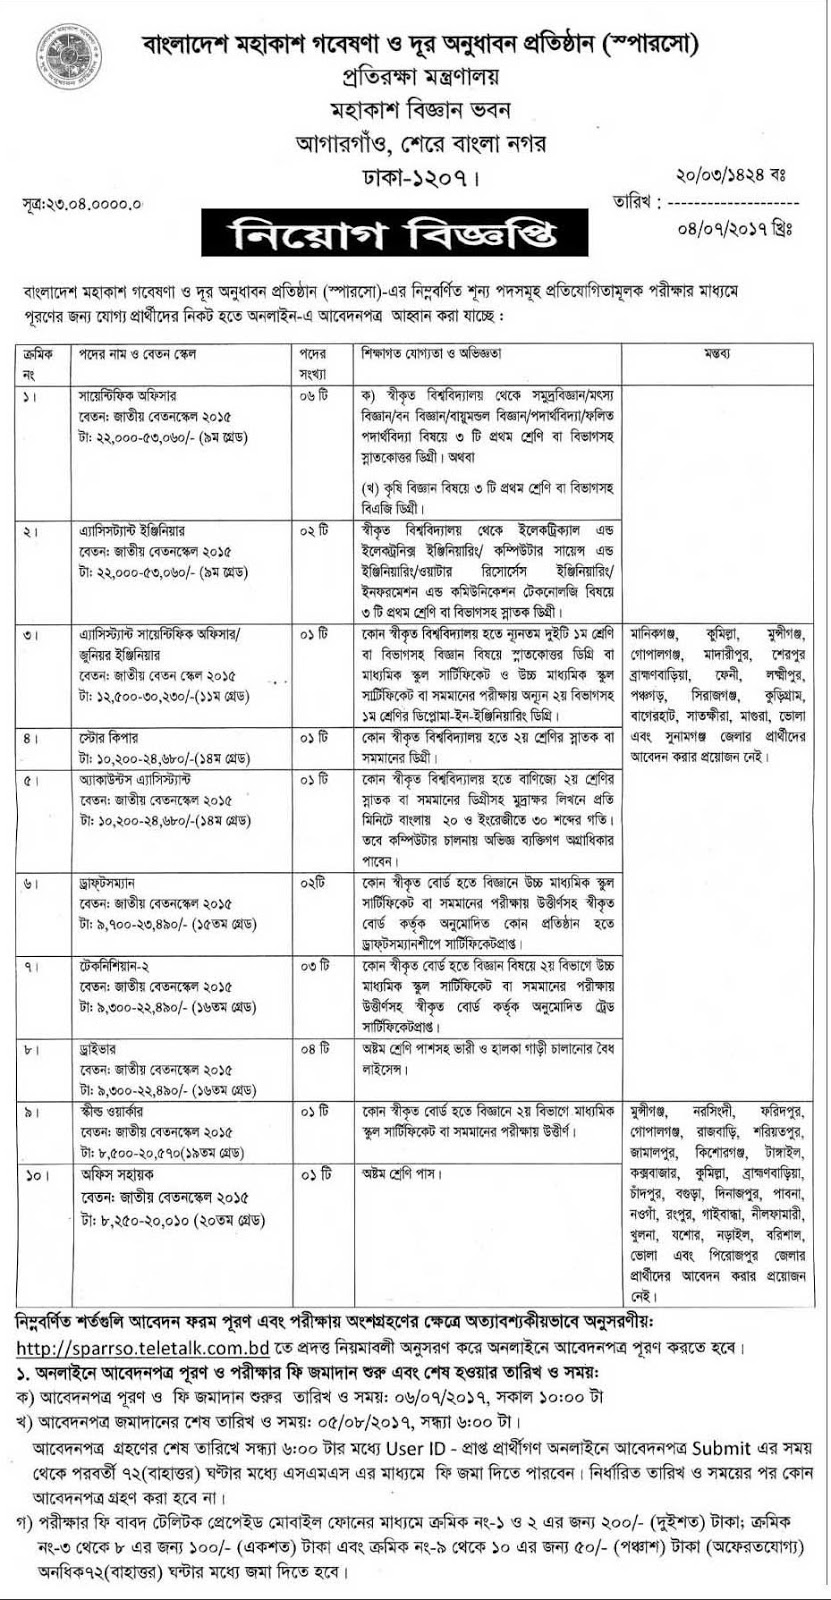 Bangladesh SPARRSO Job Circular 2017 Download